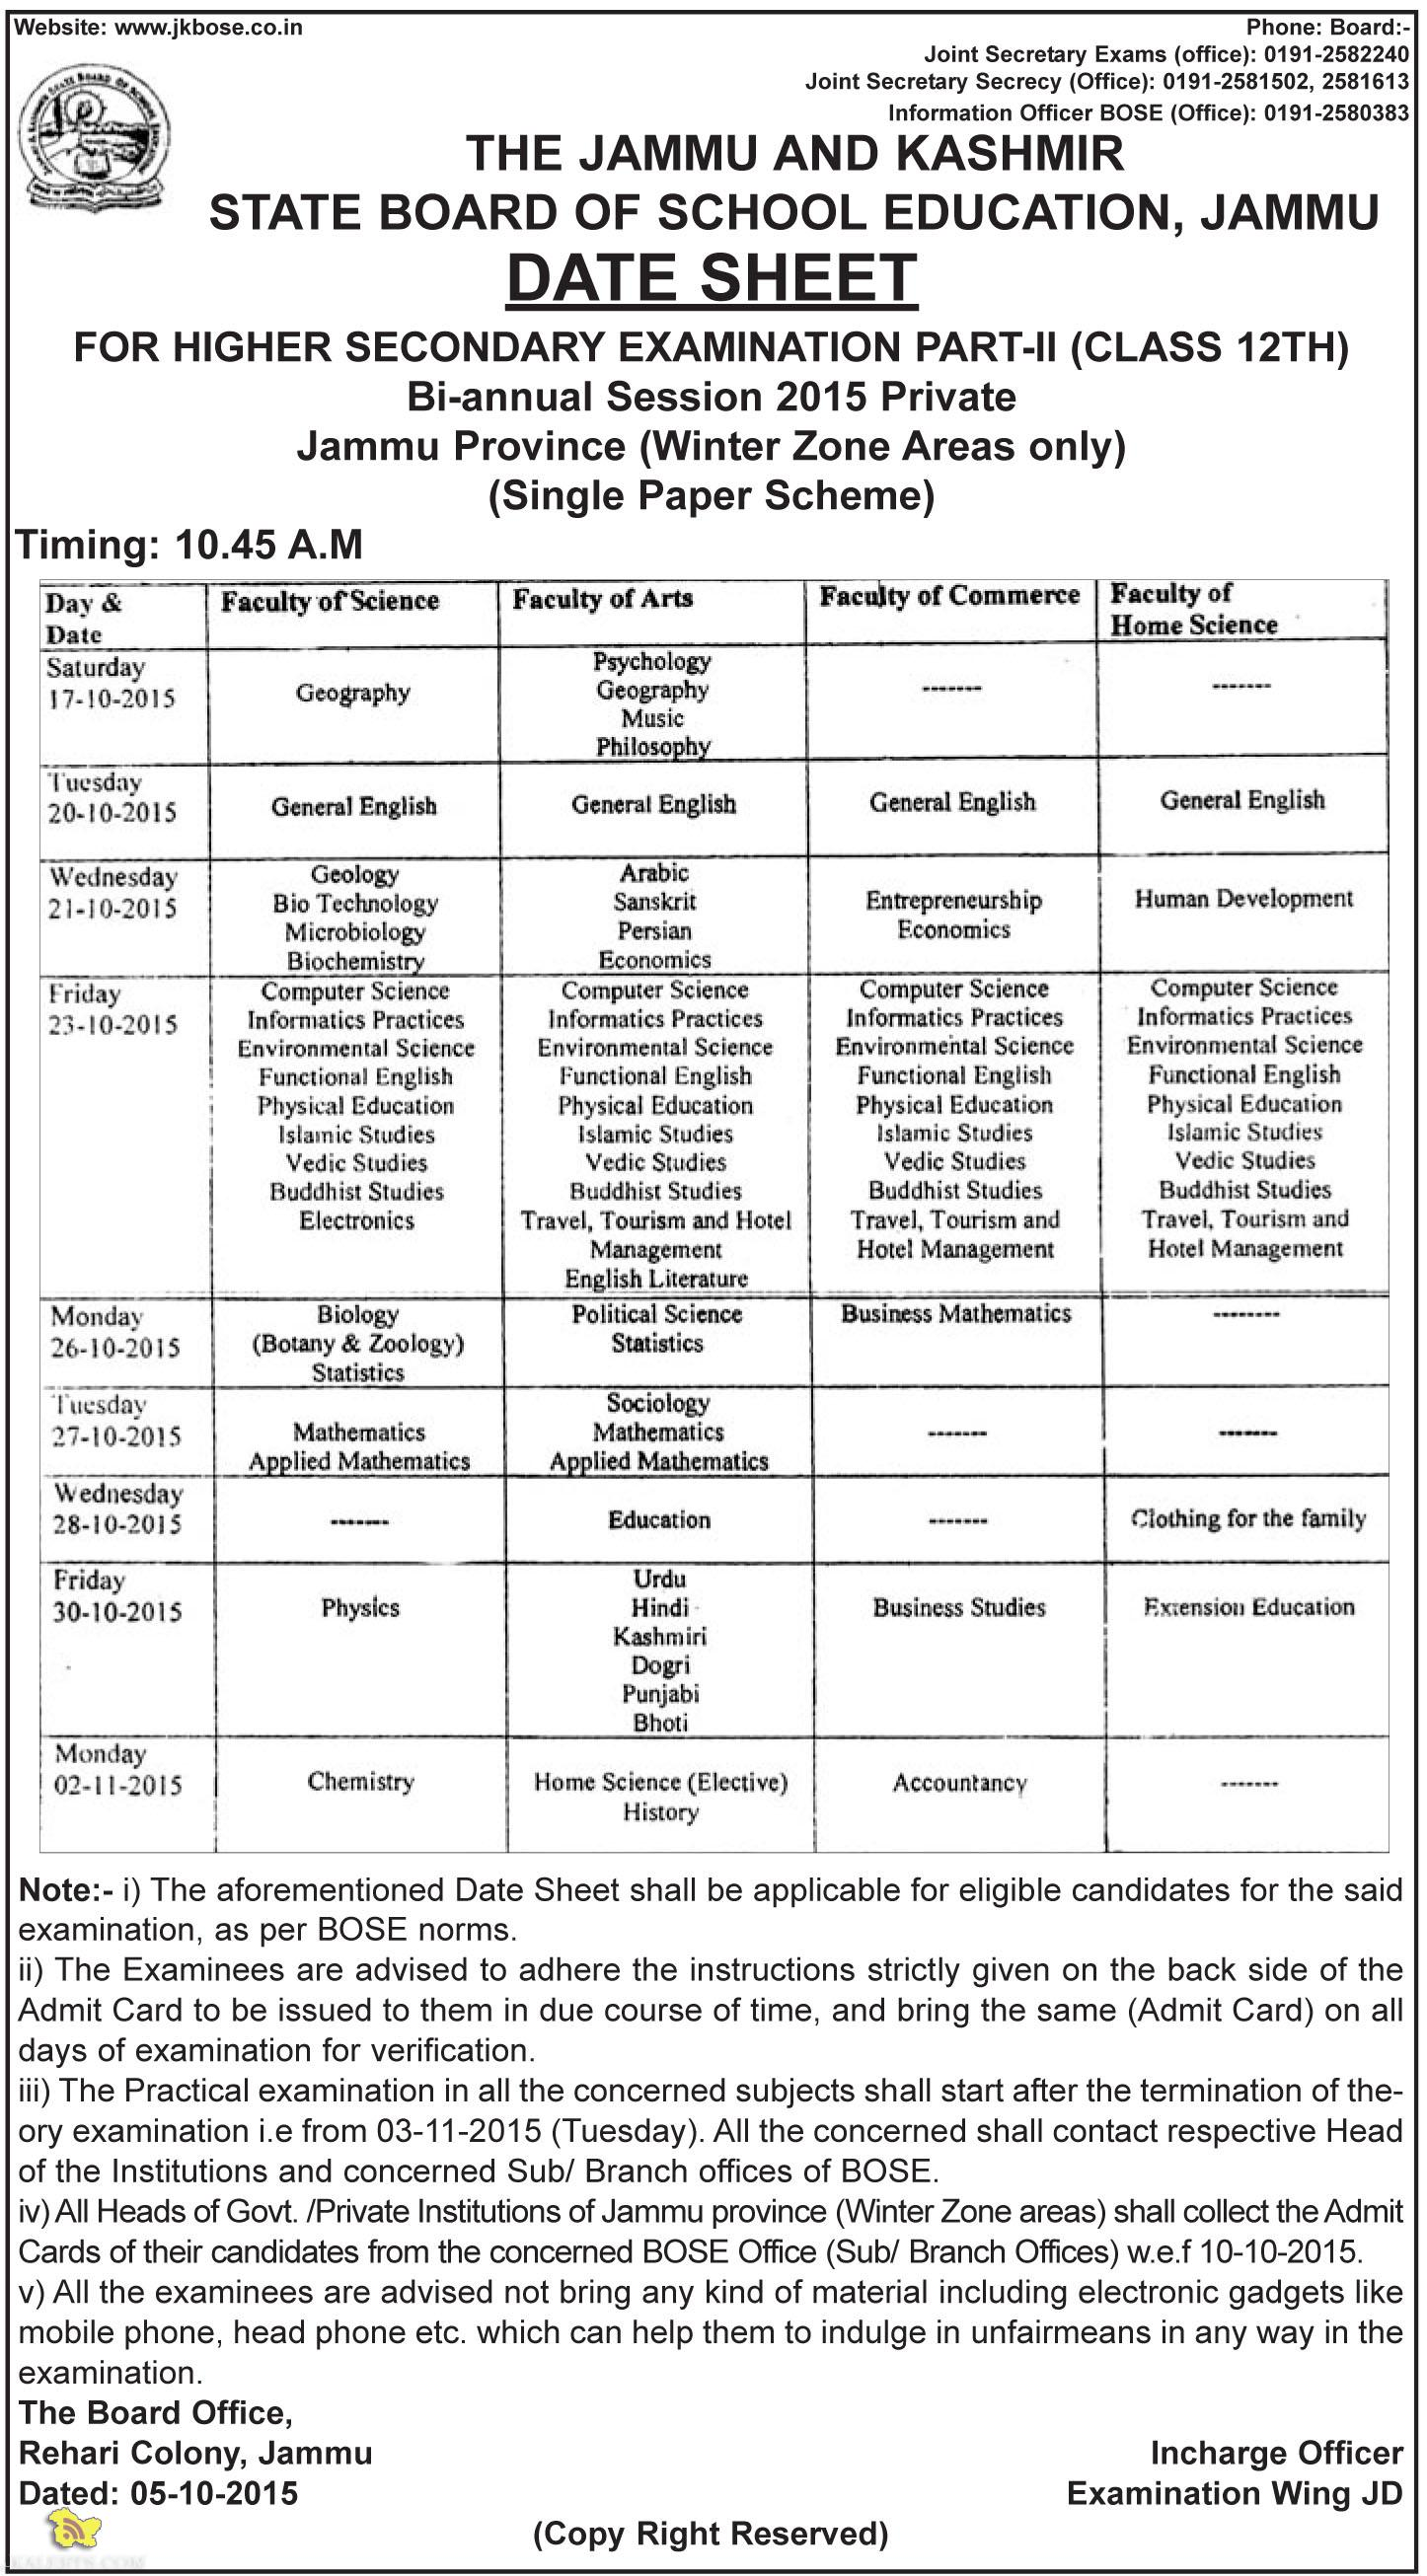 Jkbose Class 12th Datesheet Bi-annual 2015 Private Jammu Province (Winter Zone)